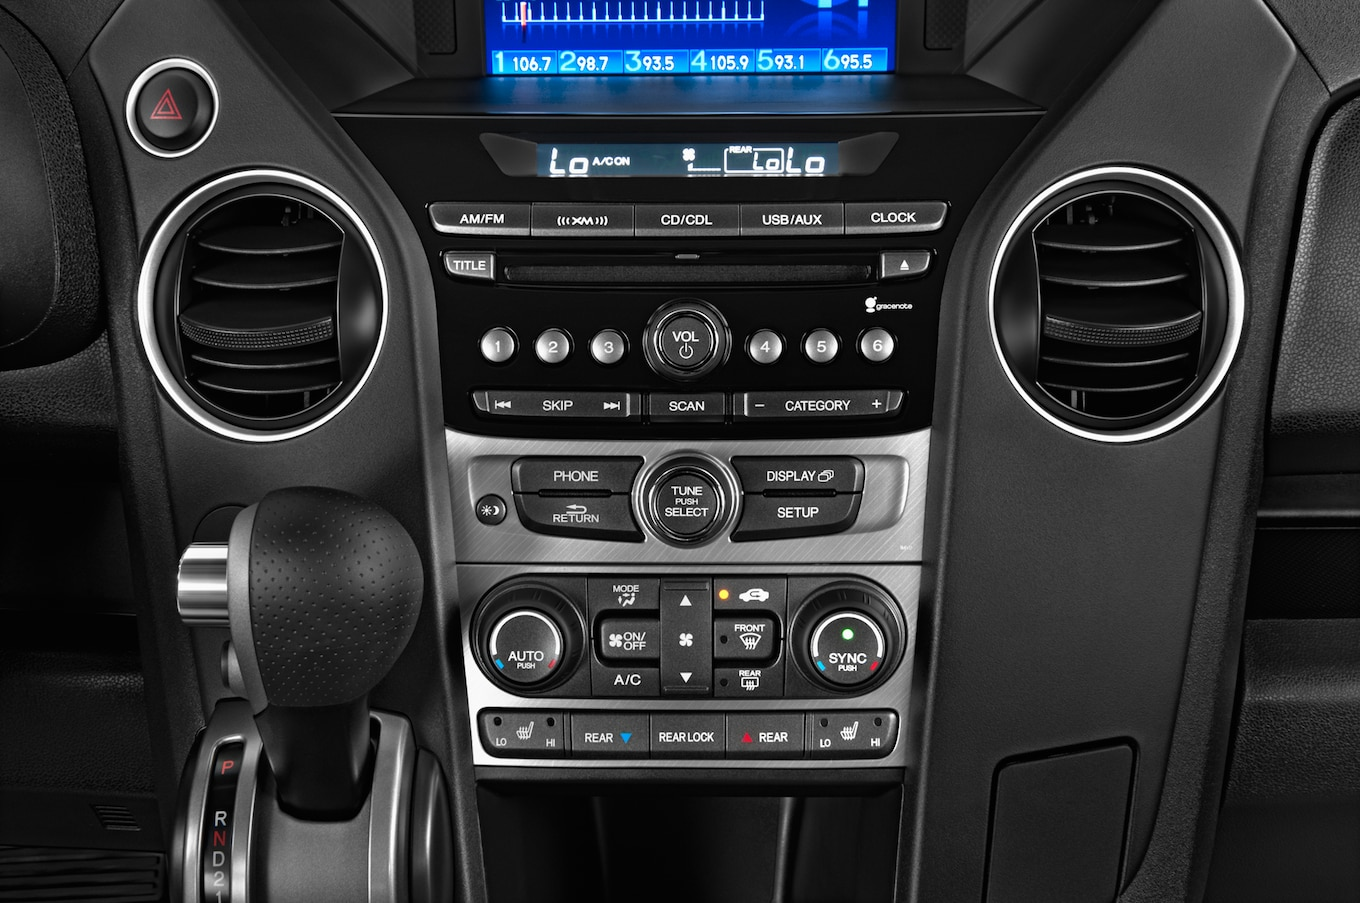 2013 honda pilot stereo manual